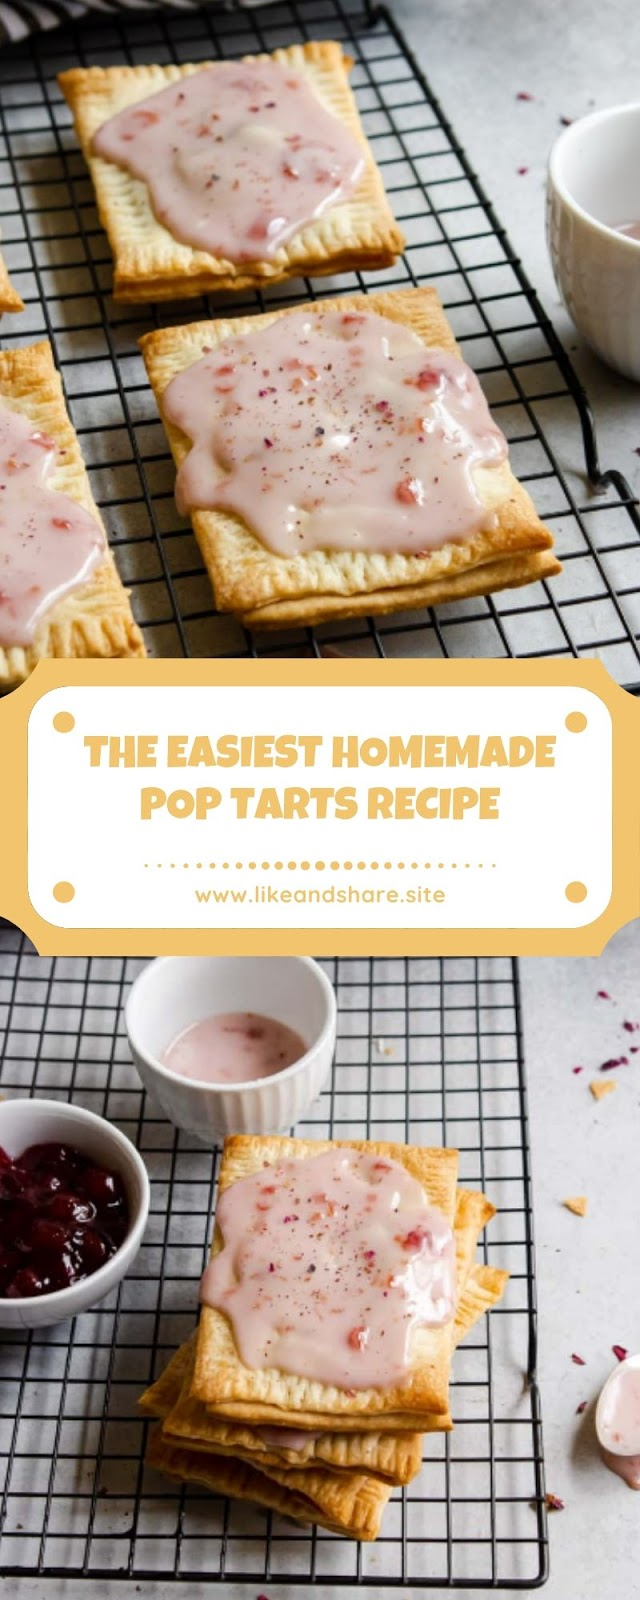 THE EASIEST HOMEMADE POP TARTS RECIPE